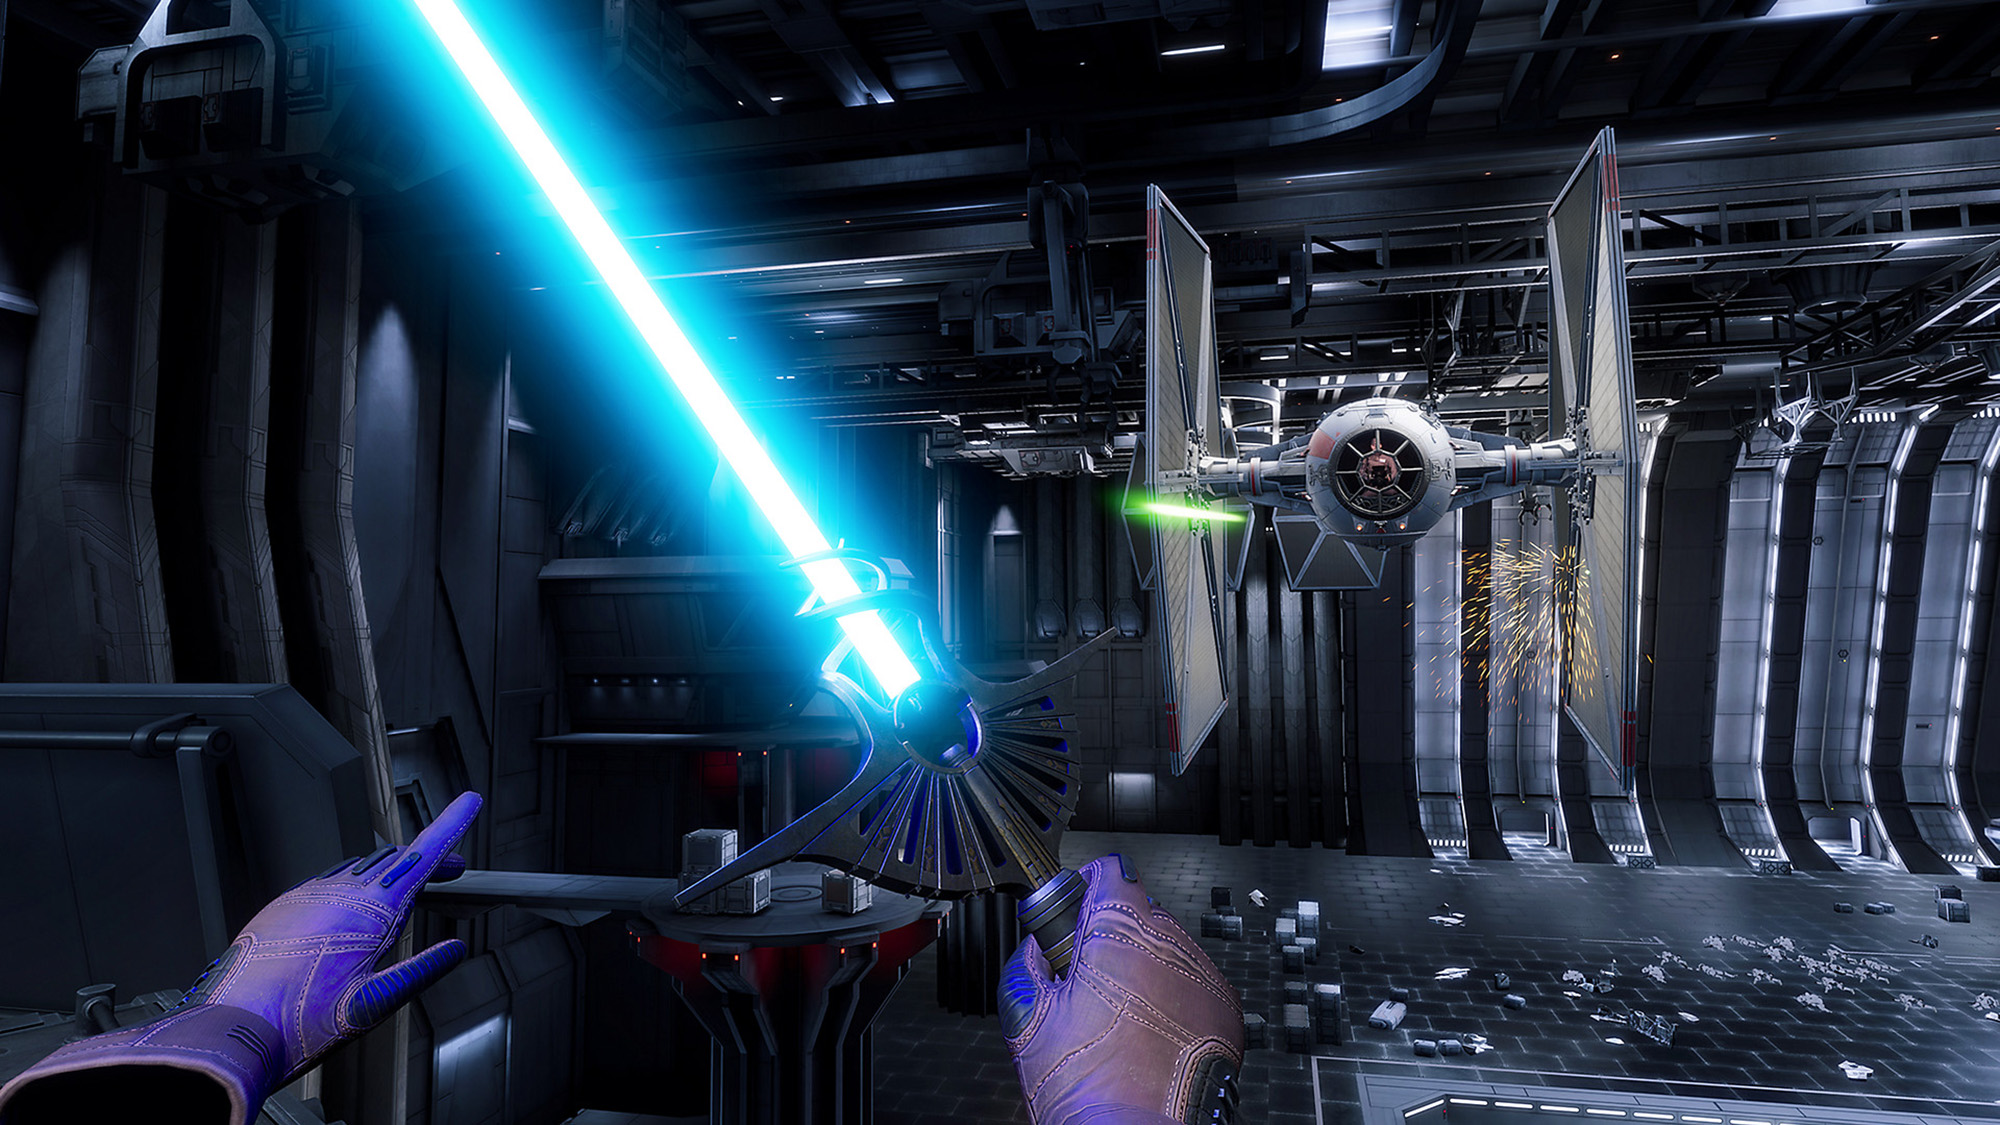 Vader Immortal A Star Wars VR Series review PSVR